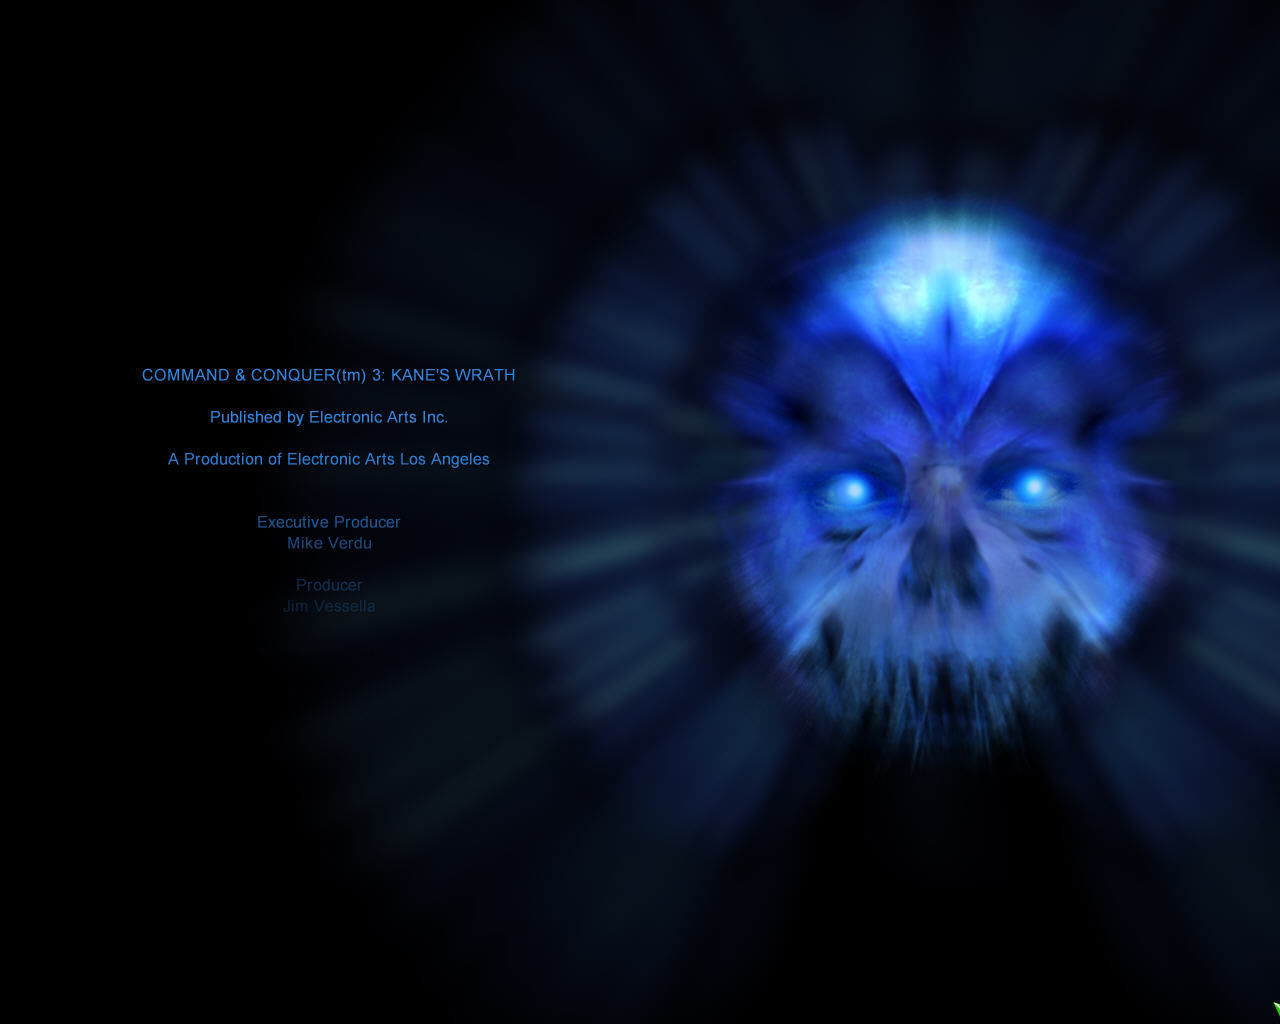 Command & Conquer 3: Kane's Wrath Windows Part of the credits